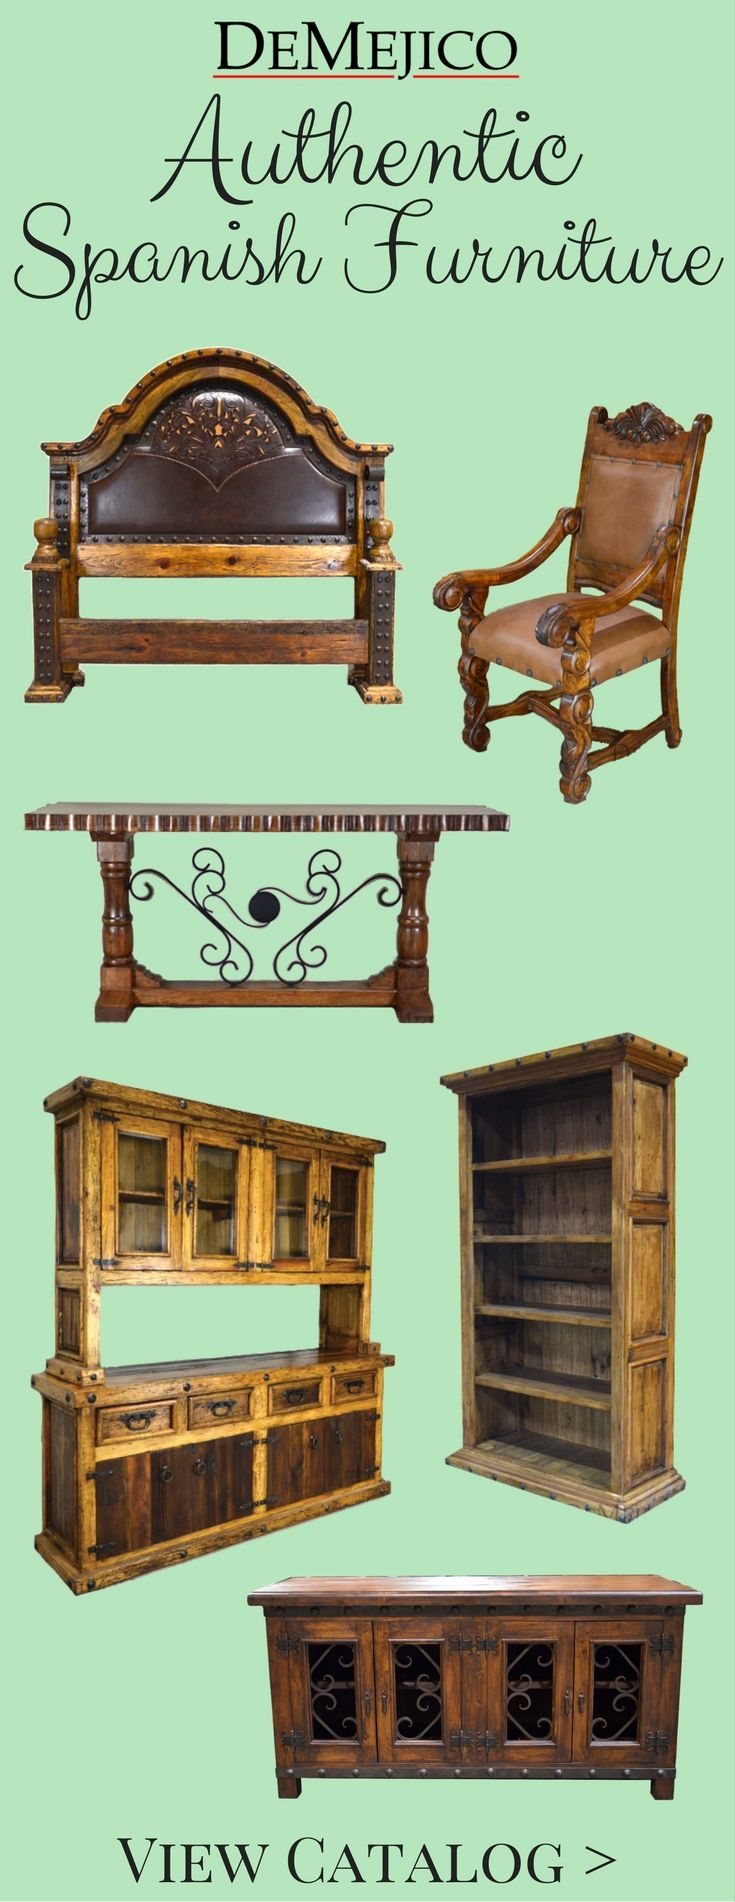 Tables greene s amish furniture part 2 - Tables Greene S Amish Furniture Part 2 Authentic Handcrafted Rustic Spanish Style Furniture Download